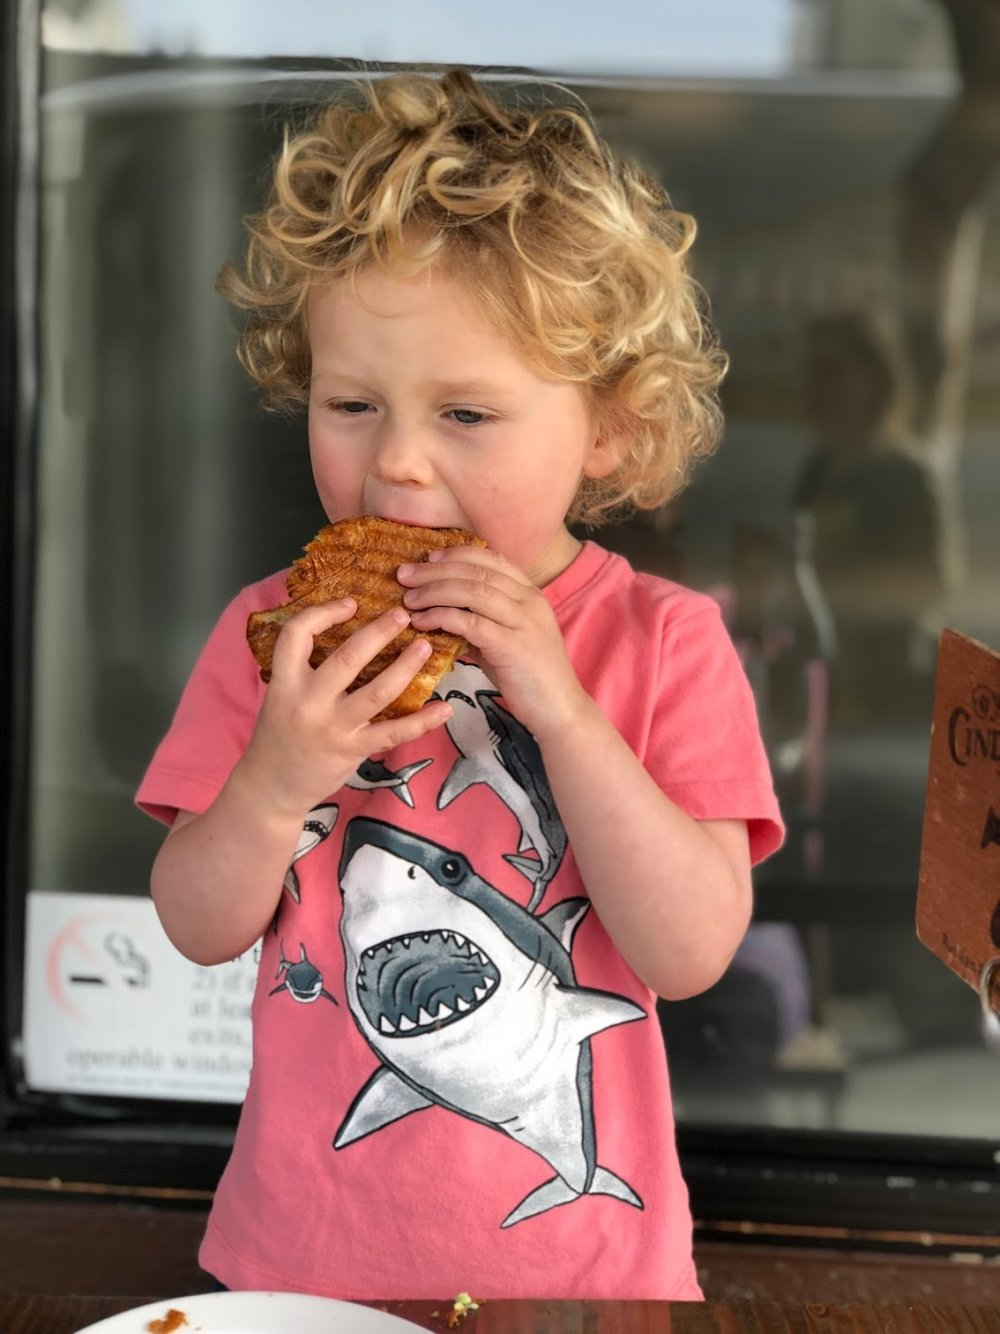 The breakfast sandwiches at Devil's Teeth Baking Company are heavenly. Grab a shark cookie and head down to Sunset beach. -